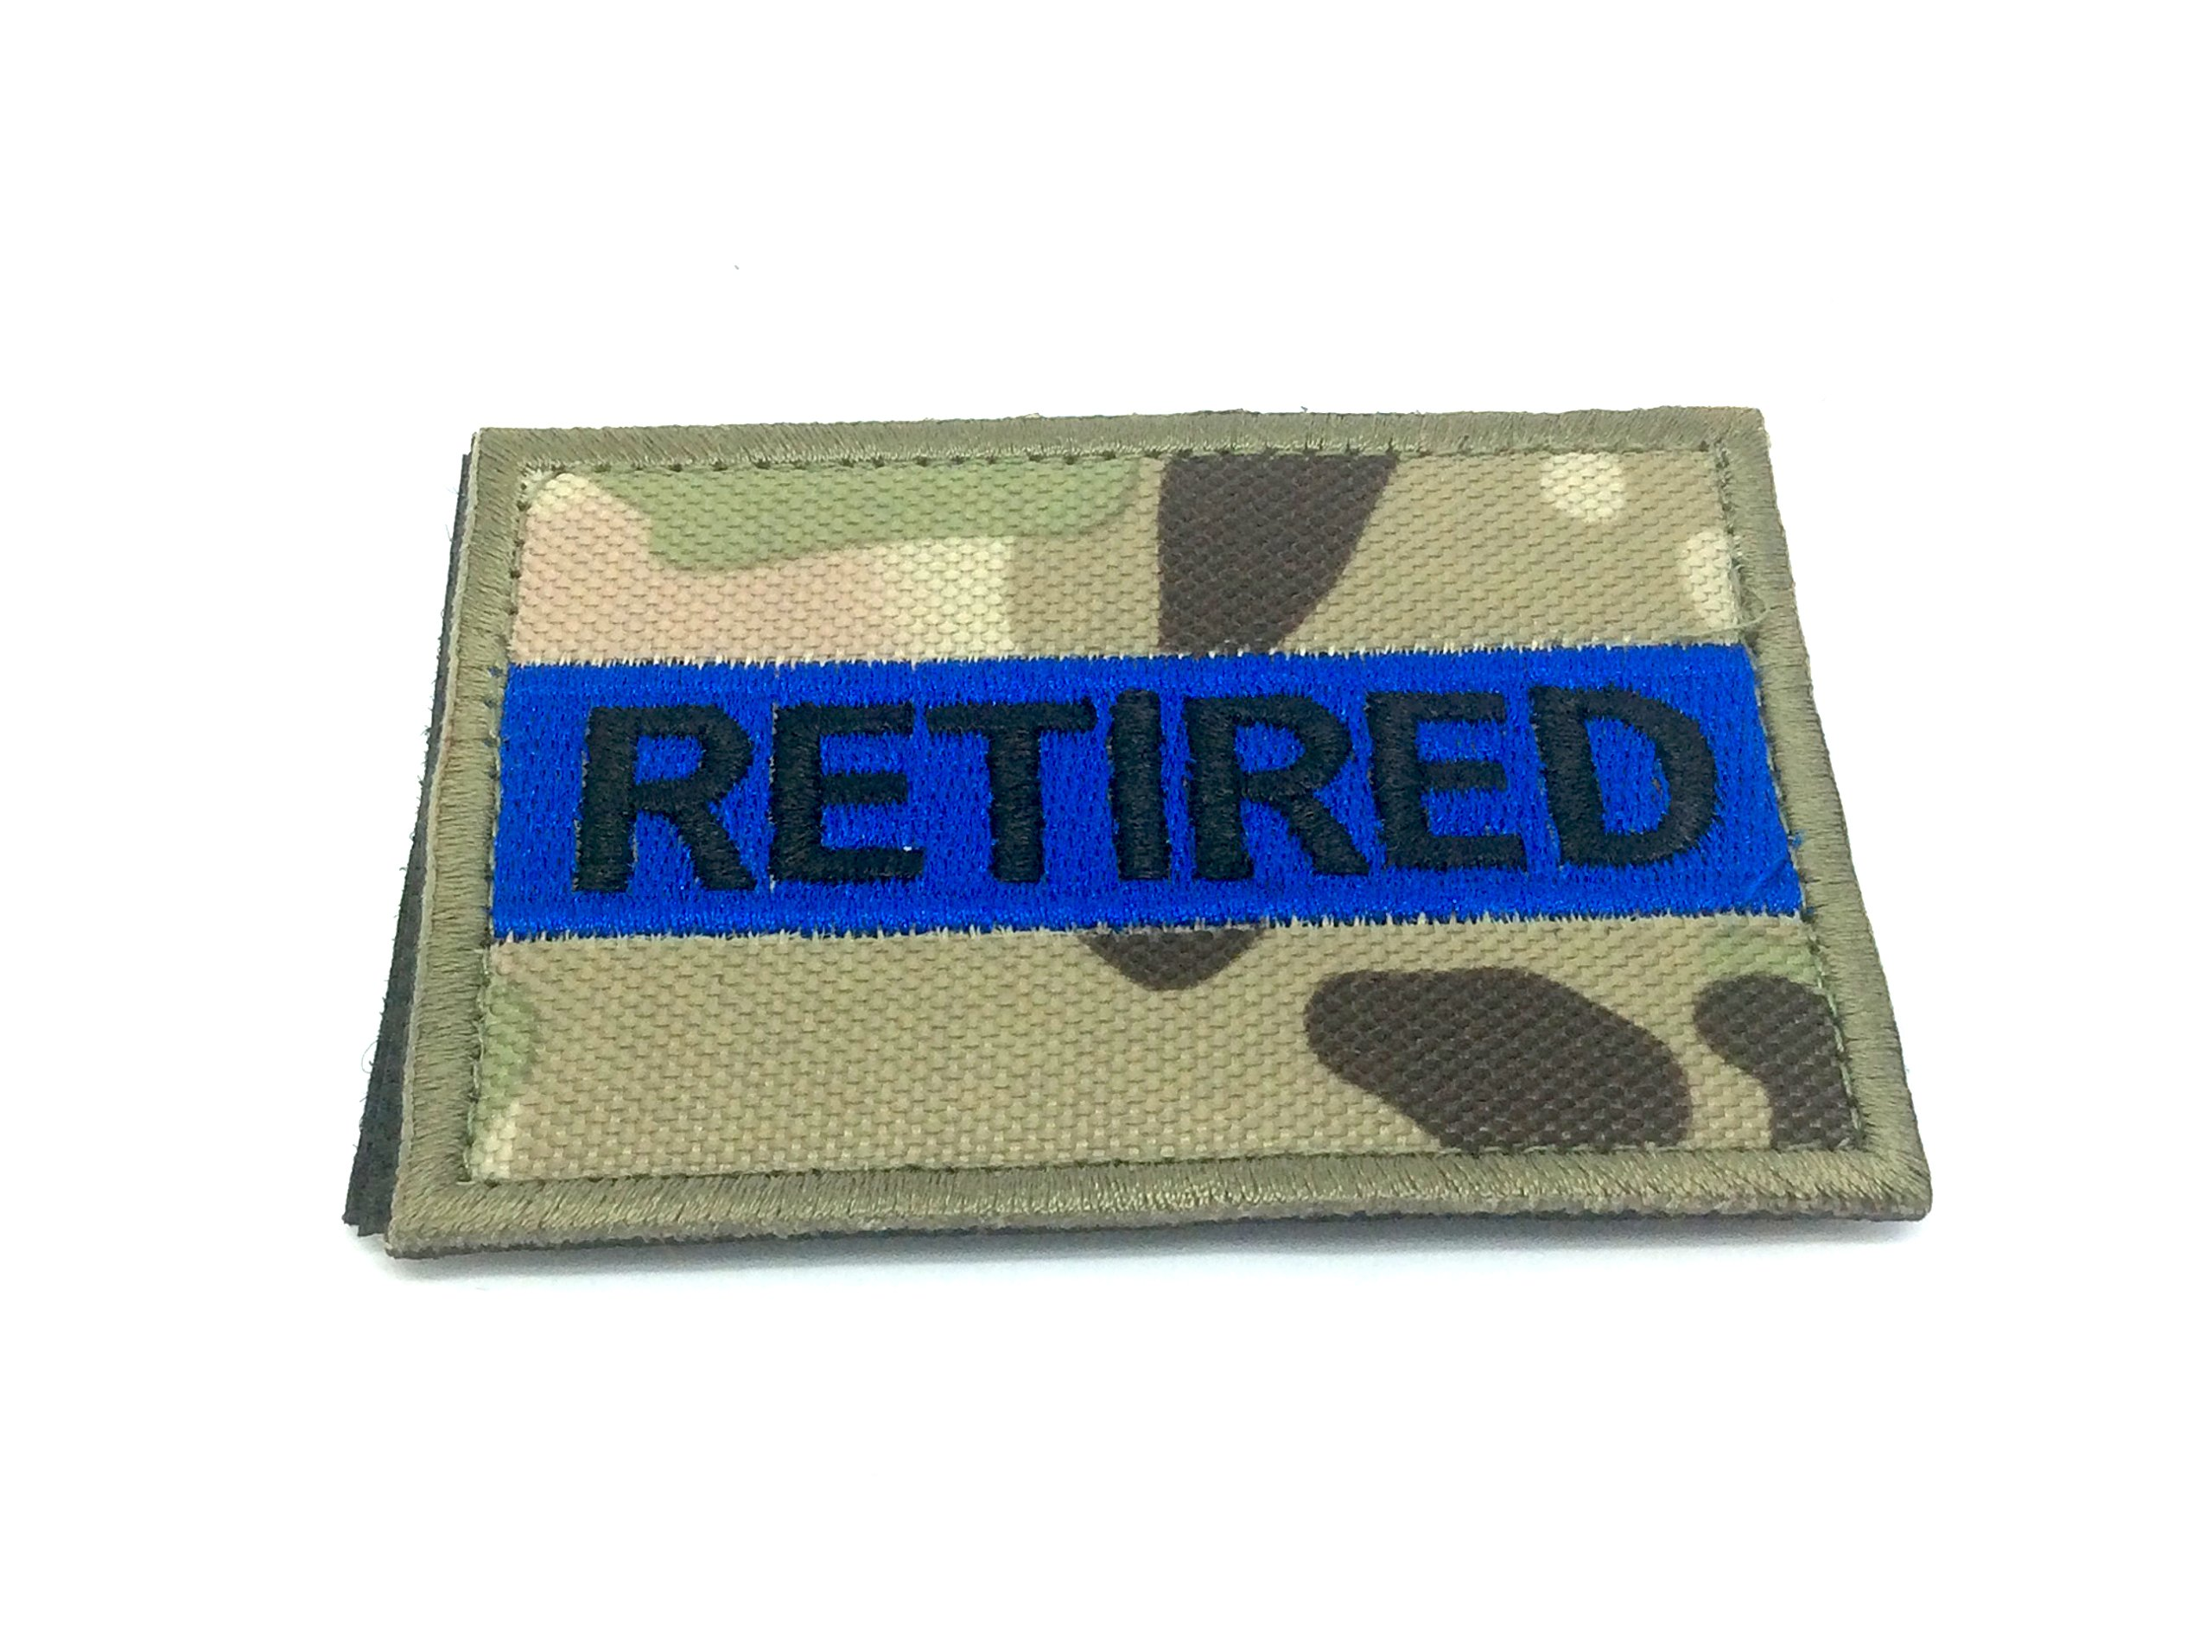 Retired Sottile Linea Blu Multicam Camo Ricamato Airsoft Patch Toppa